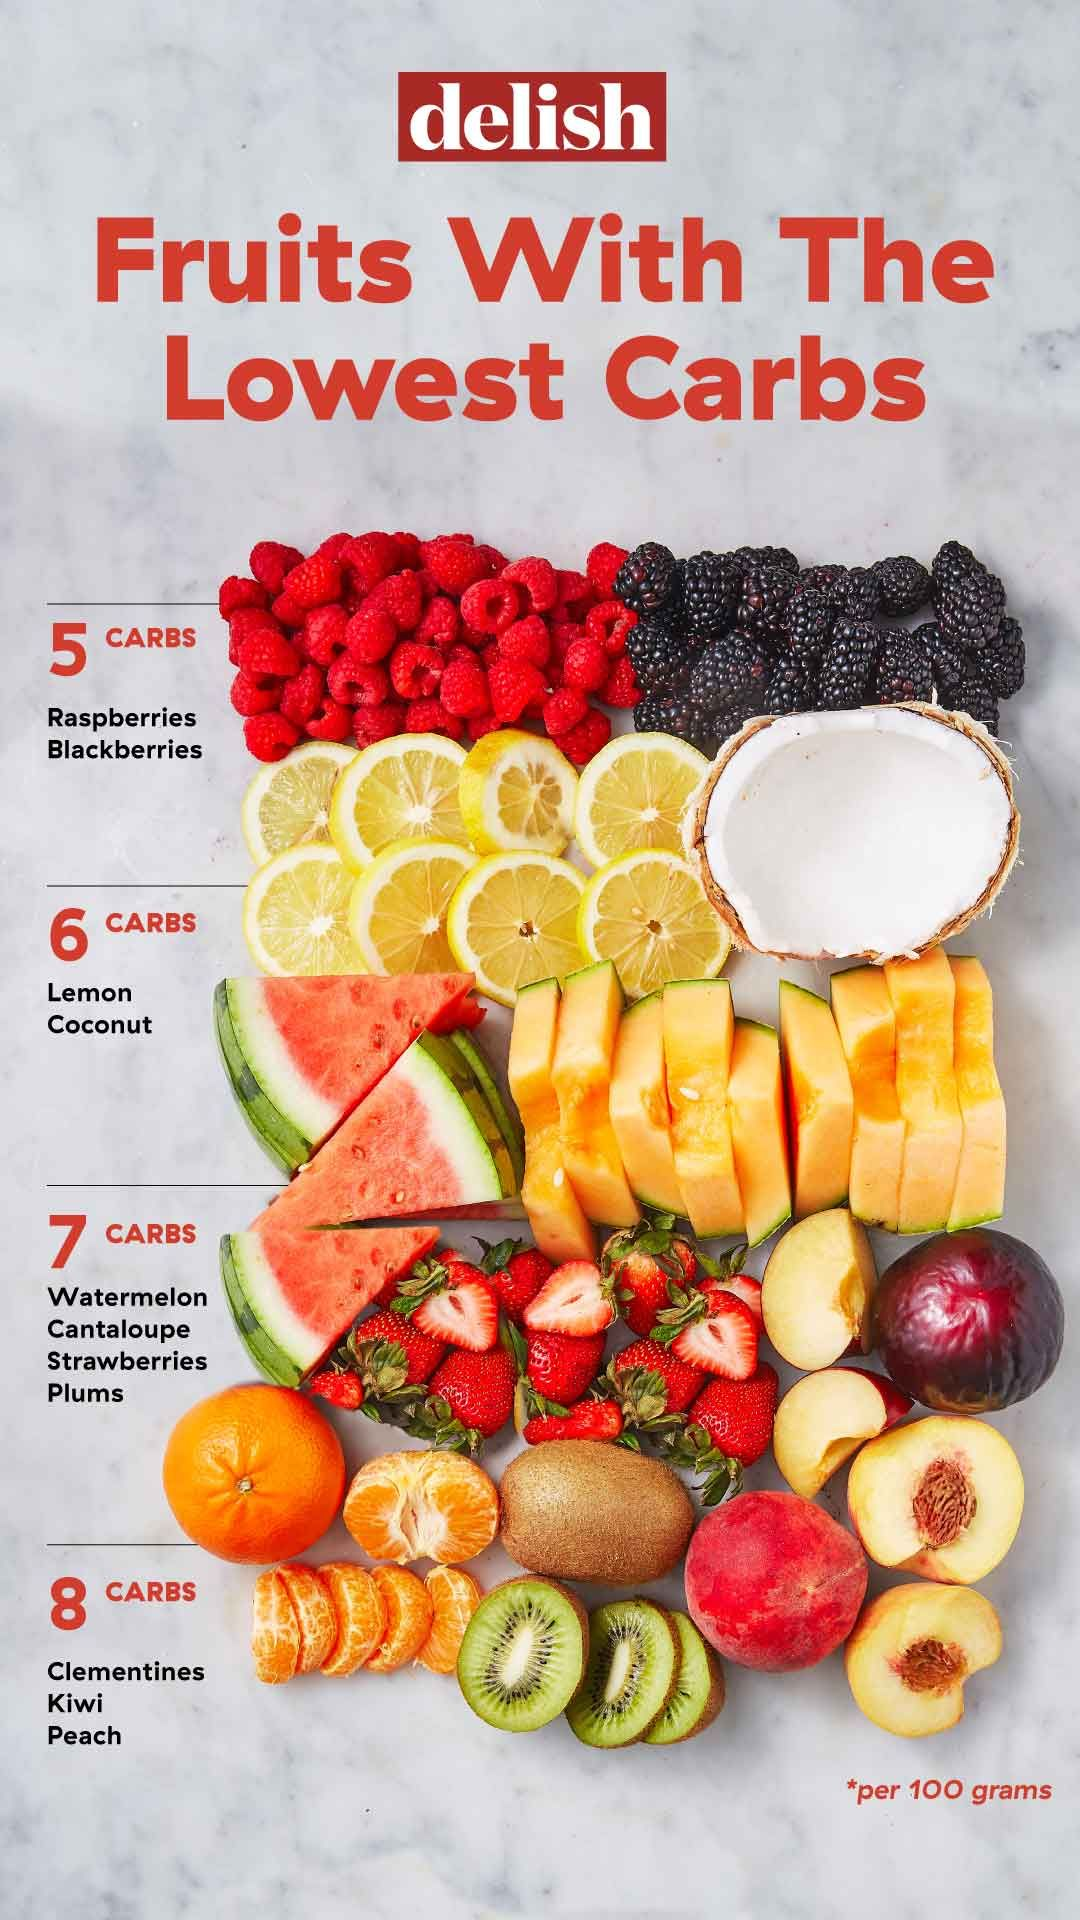 image about Low Carb Fruits and Vegetables Printable List named Small-Carb Culmination And Berries Consultant Towards The Simplest Culmination For